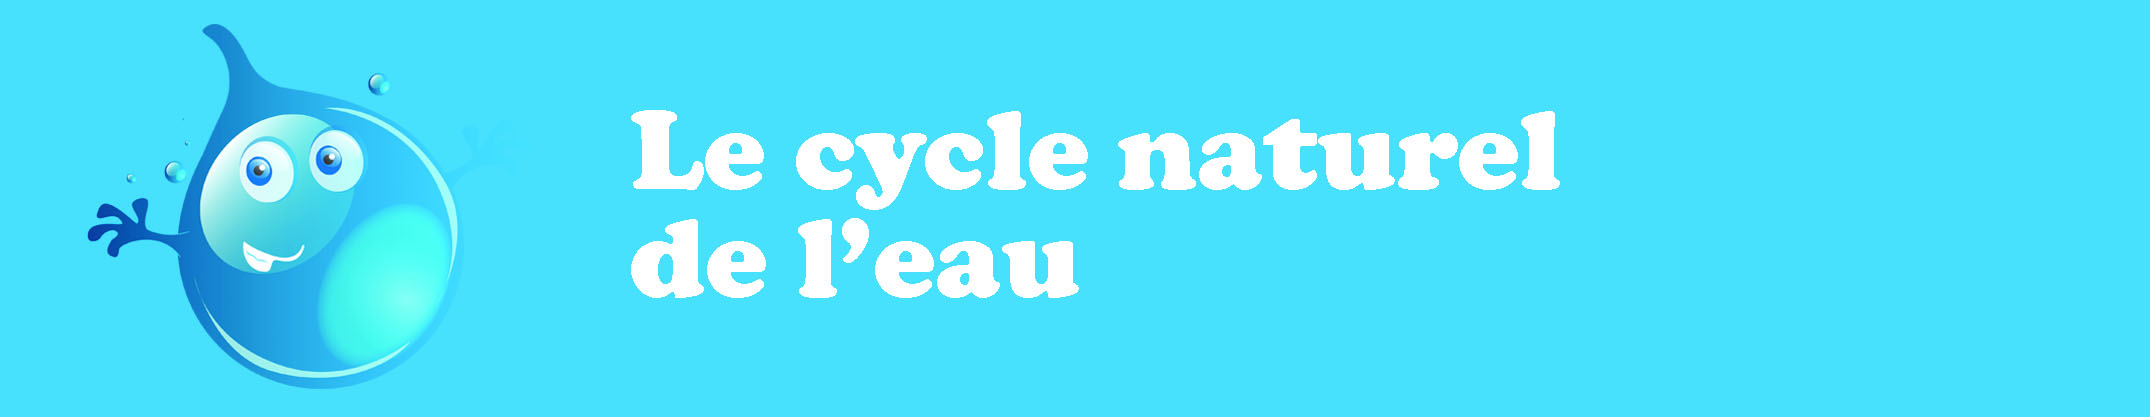 Le cycle naturel de leau